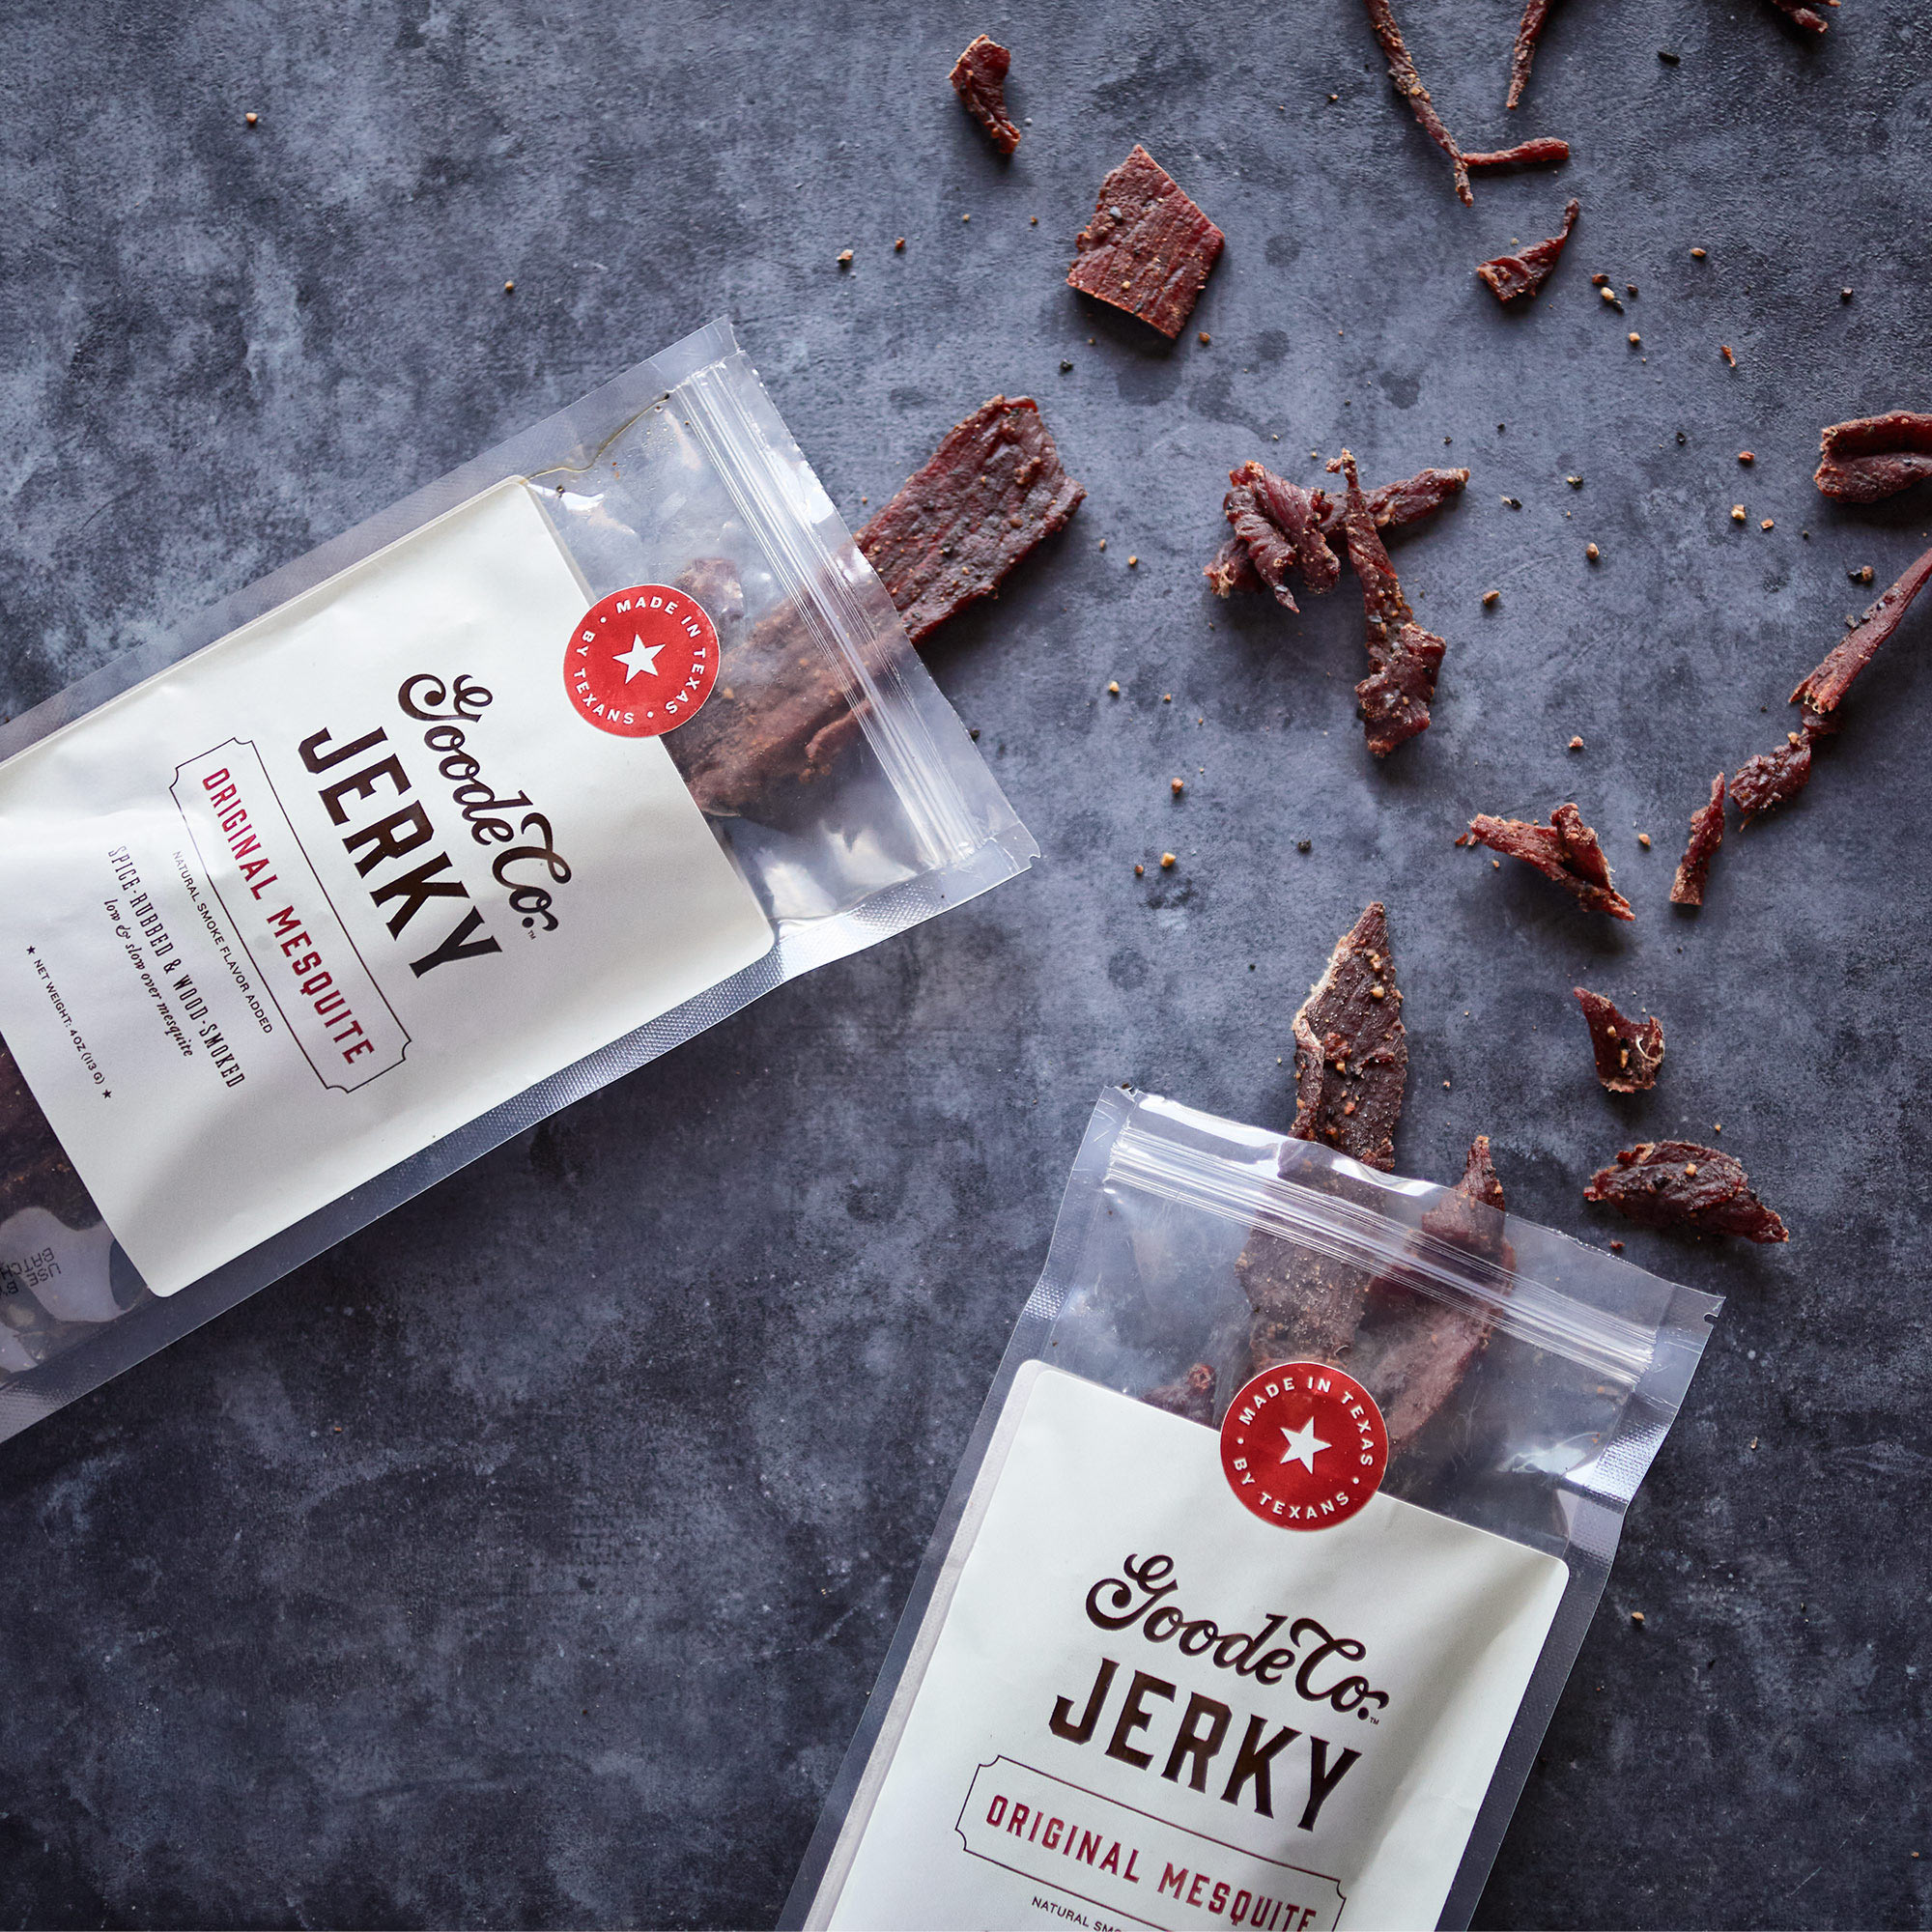 Two bags of Goode Co. Jerky spilling out